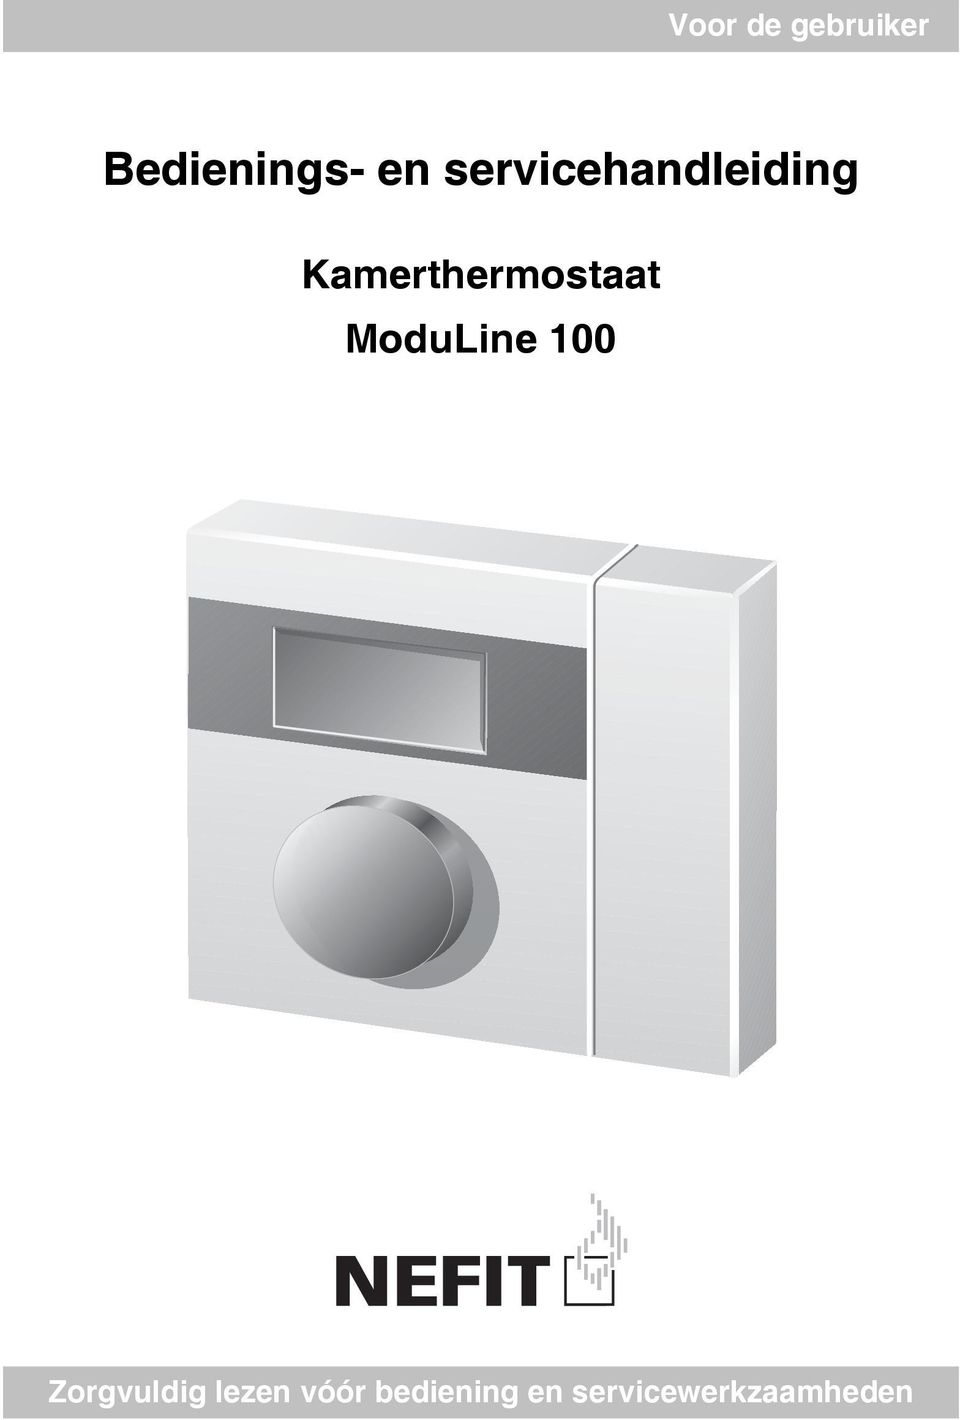 Kamerthermostaat ModuLine 100